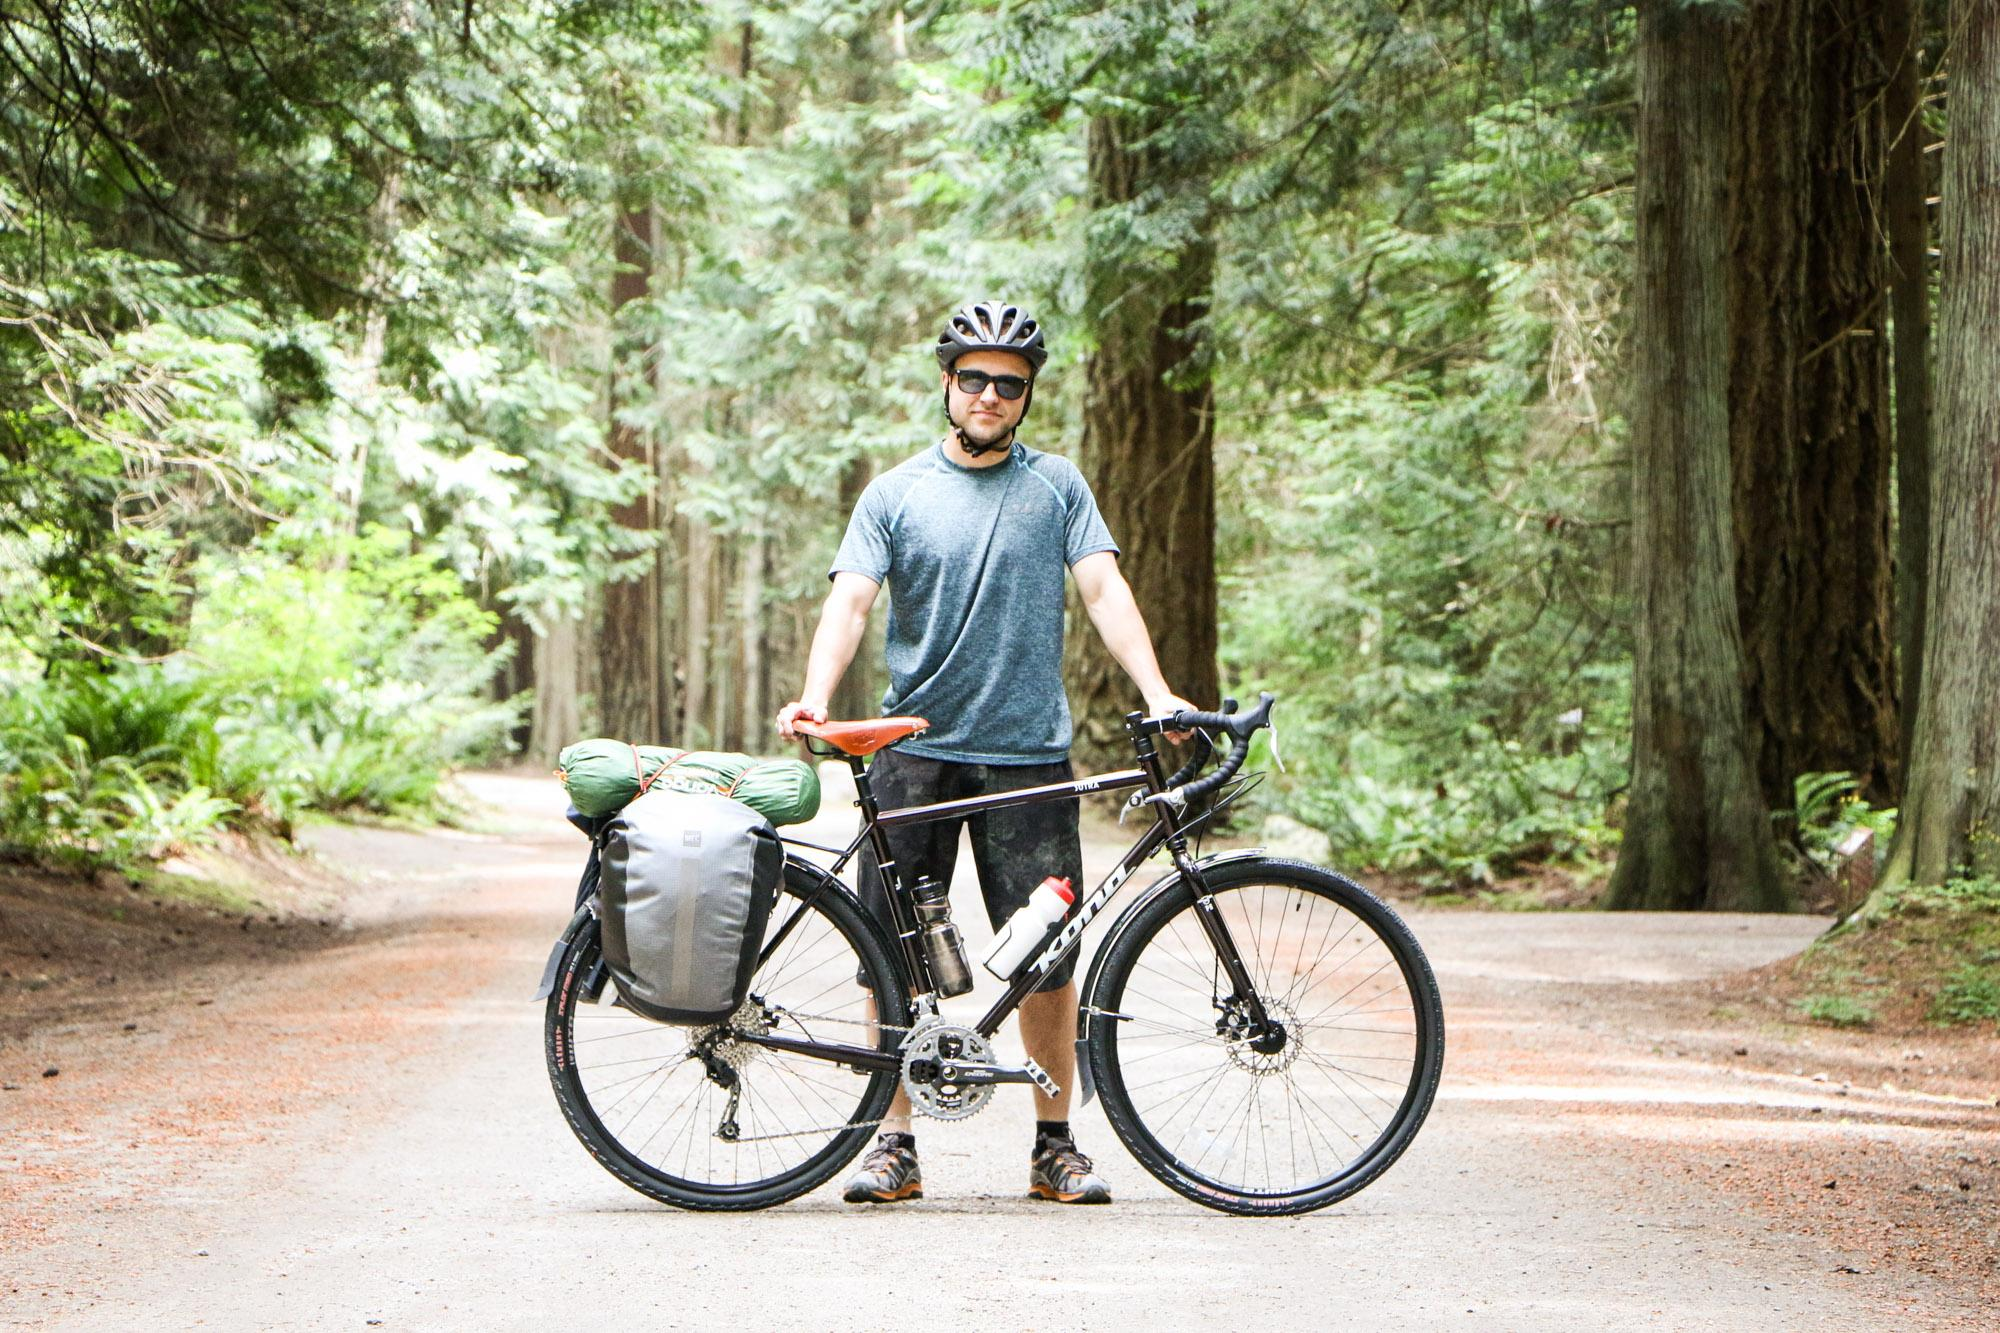 Robbie and his Kona Sutra